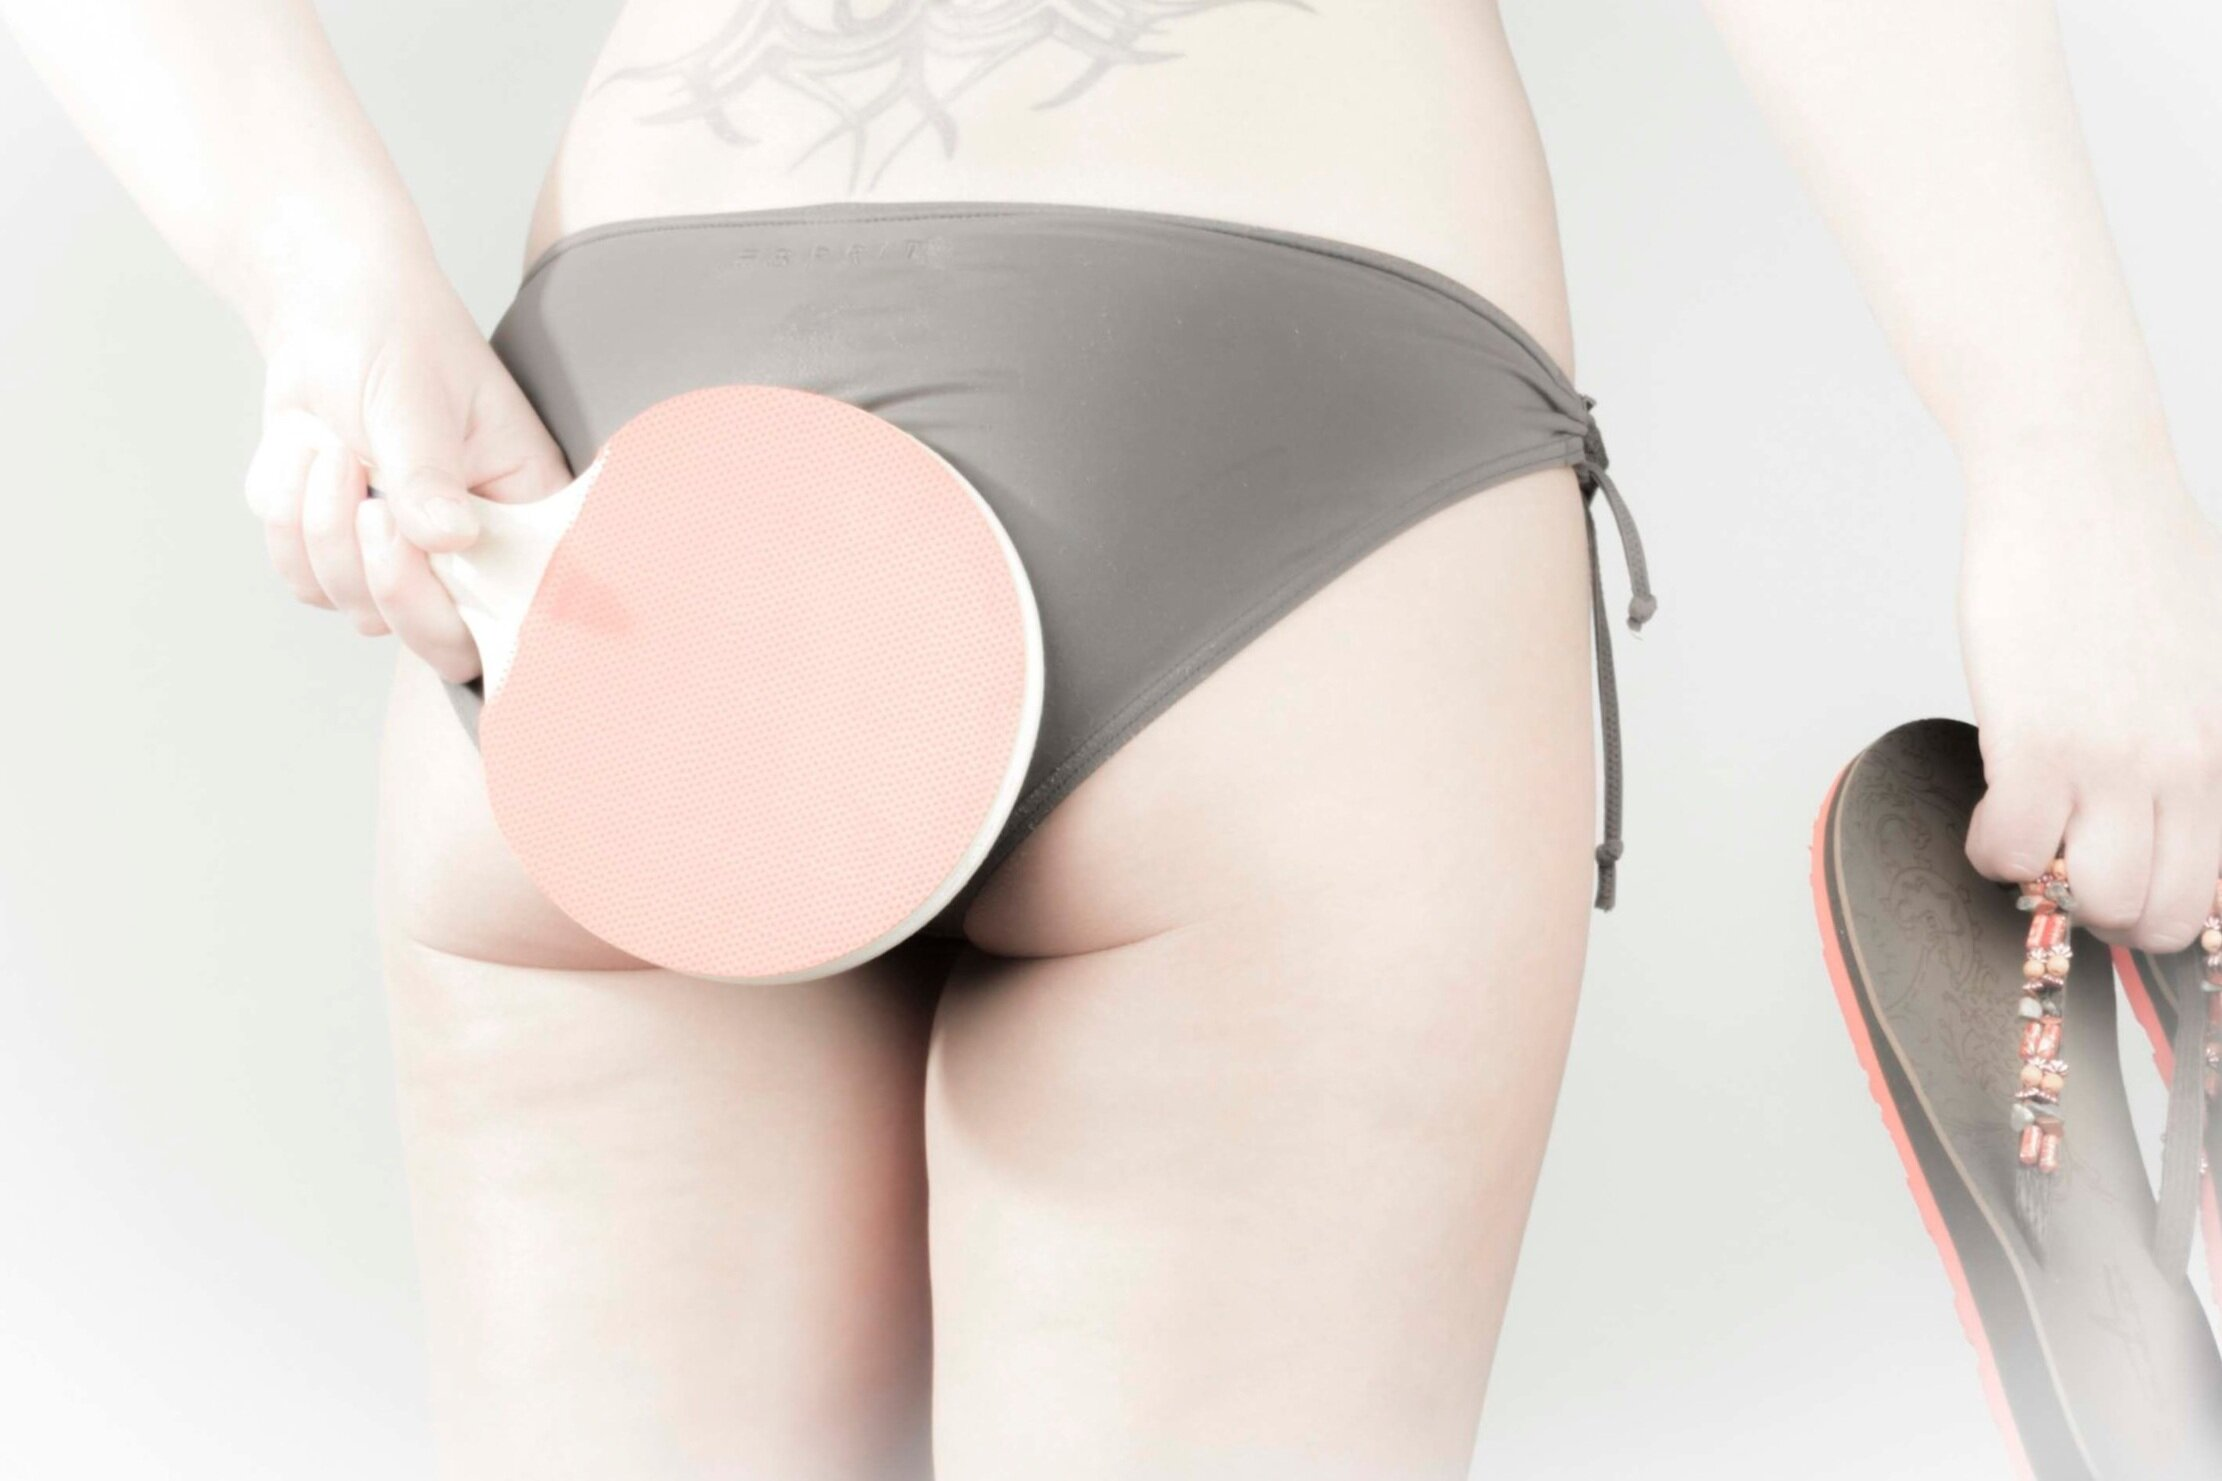 Ass All 4 Anal 7 easy ways to get rid of a smelly ass forever - butt wax